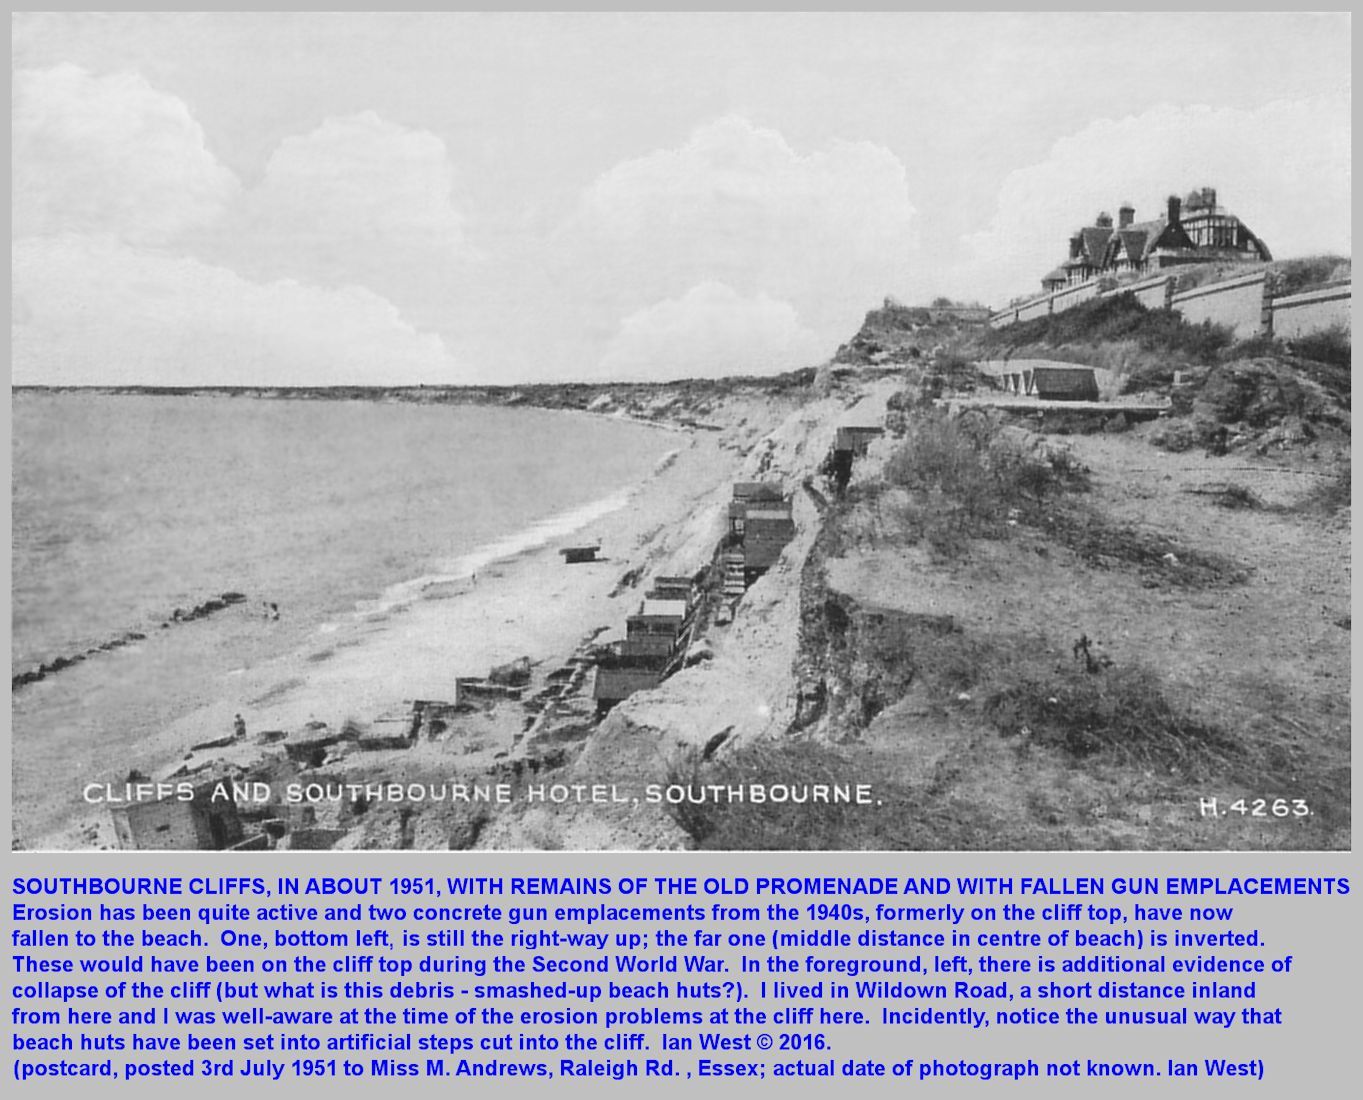 Southbourne cliff collapse near the stepped huts, at the site of the former, 1900, sea-front houses, with fallen, concrete gun emplacements from the Second World War, 1940s, on the beach, photograph in about 1951